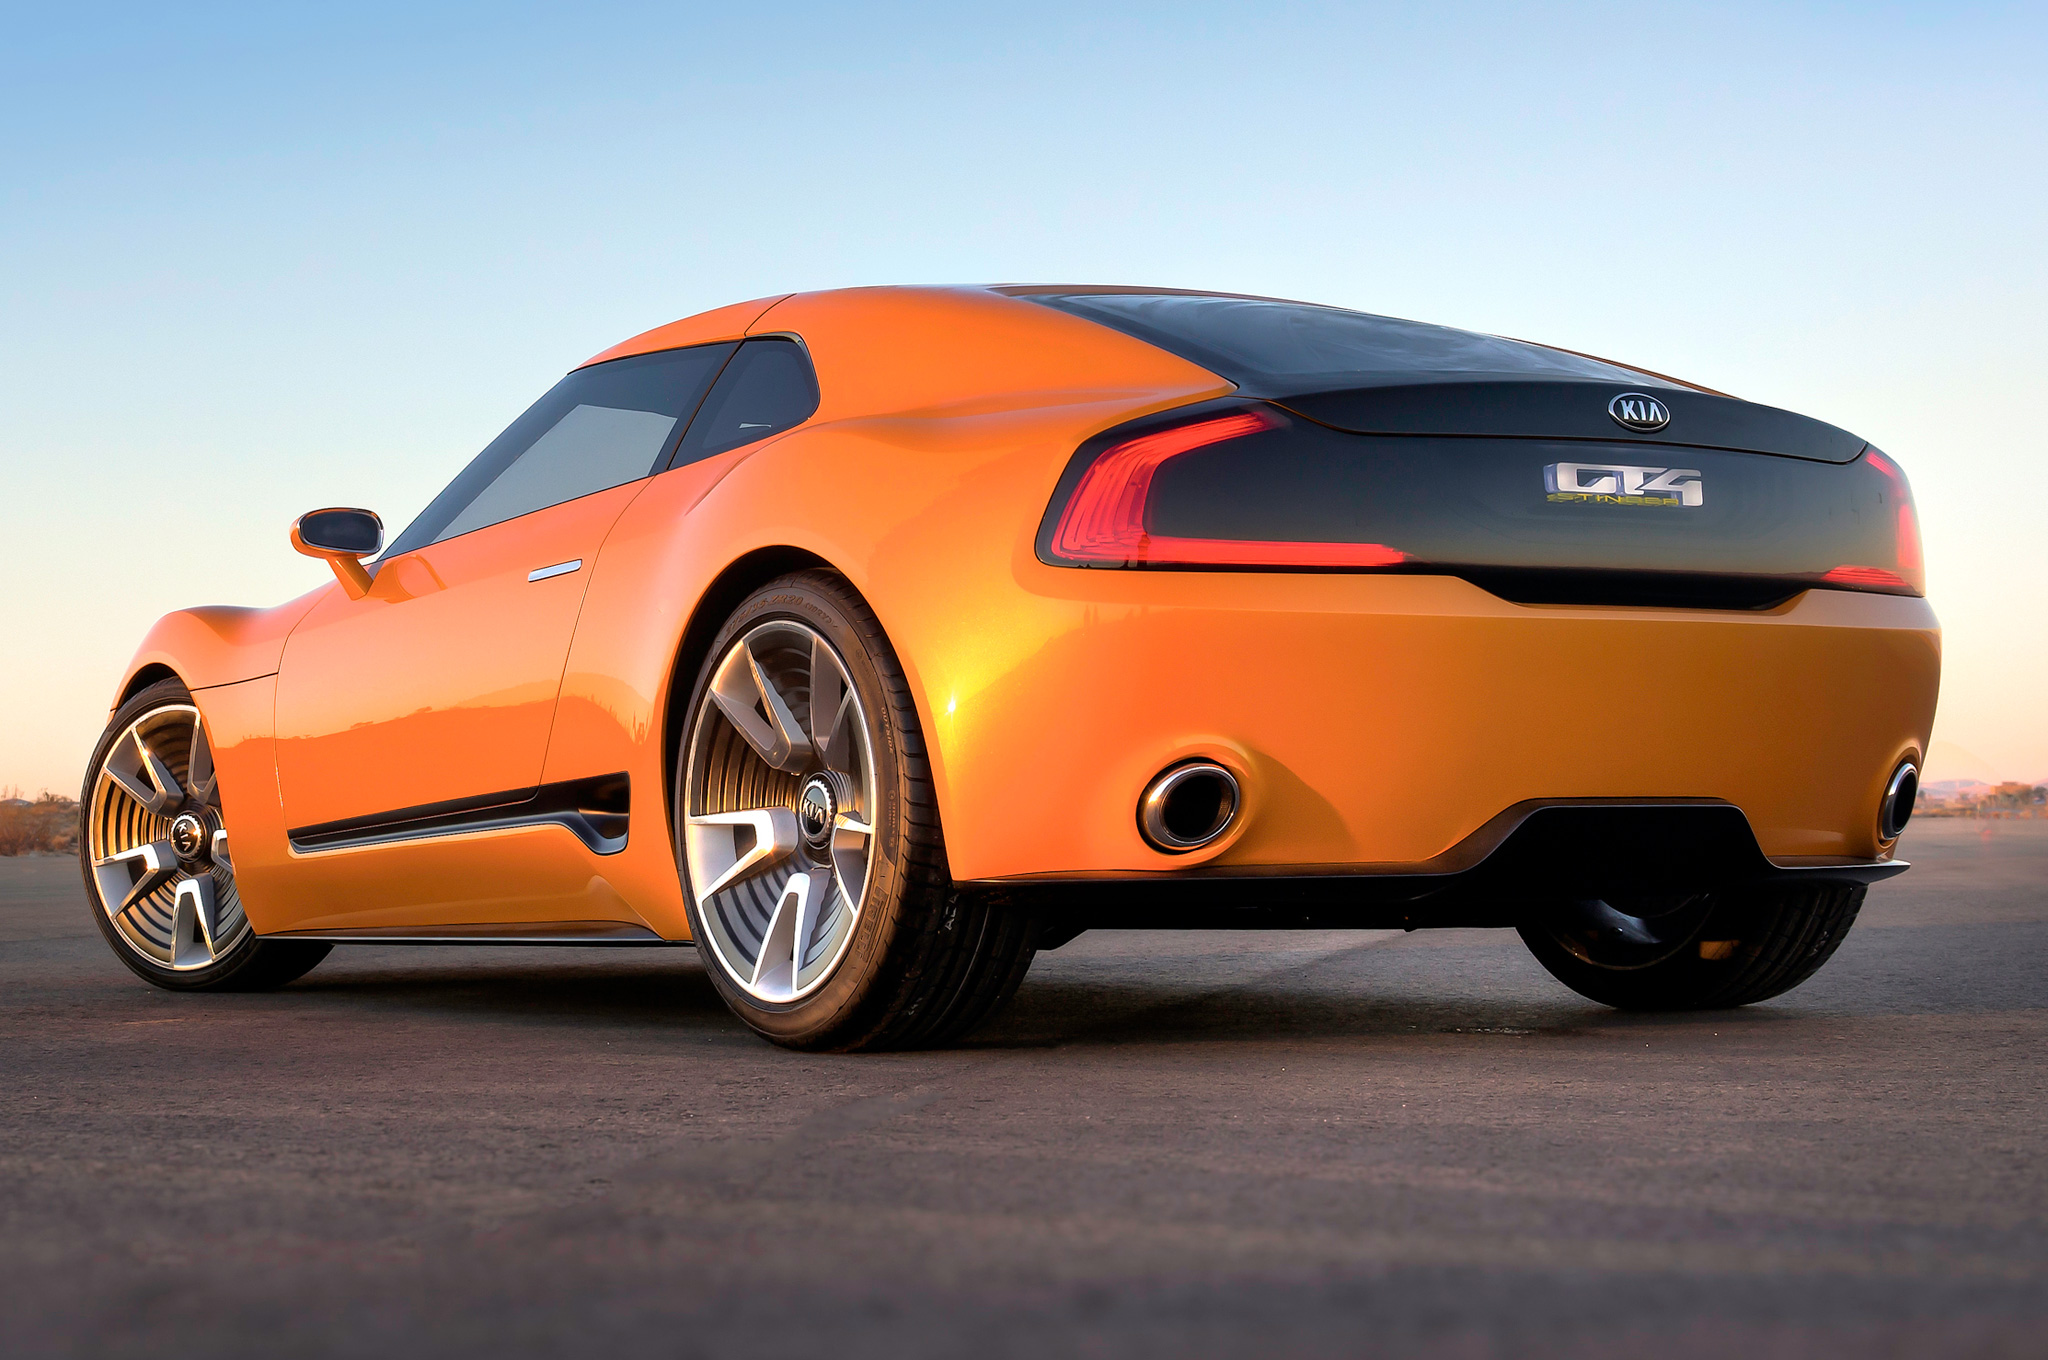 2014 Kia GT4 Stinger Concept  High Quality Background on Wallpapers Vista